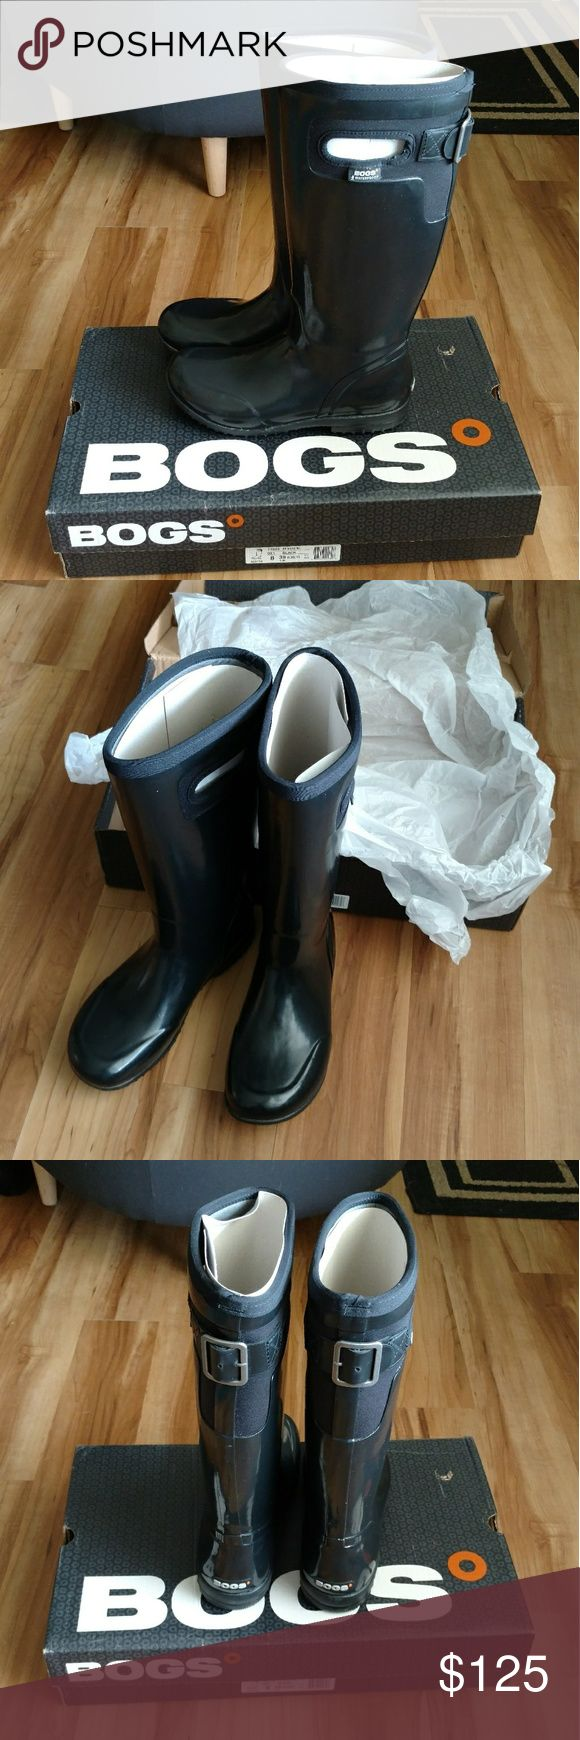 NWT Bogs Tacoma boots New, in box. Worn 1 time trying them out. Great boots, but warmer than I need. Bogs Shoes Winter & Rain Boots